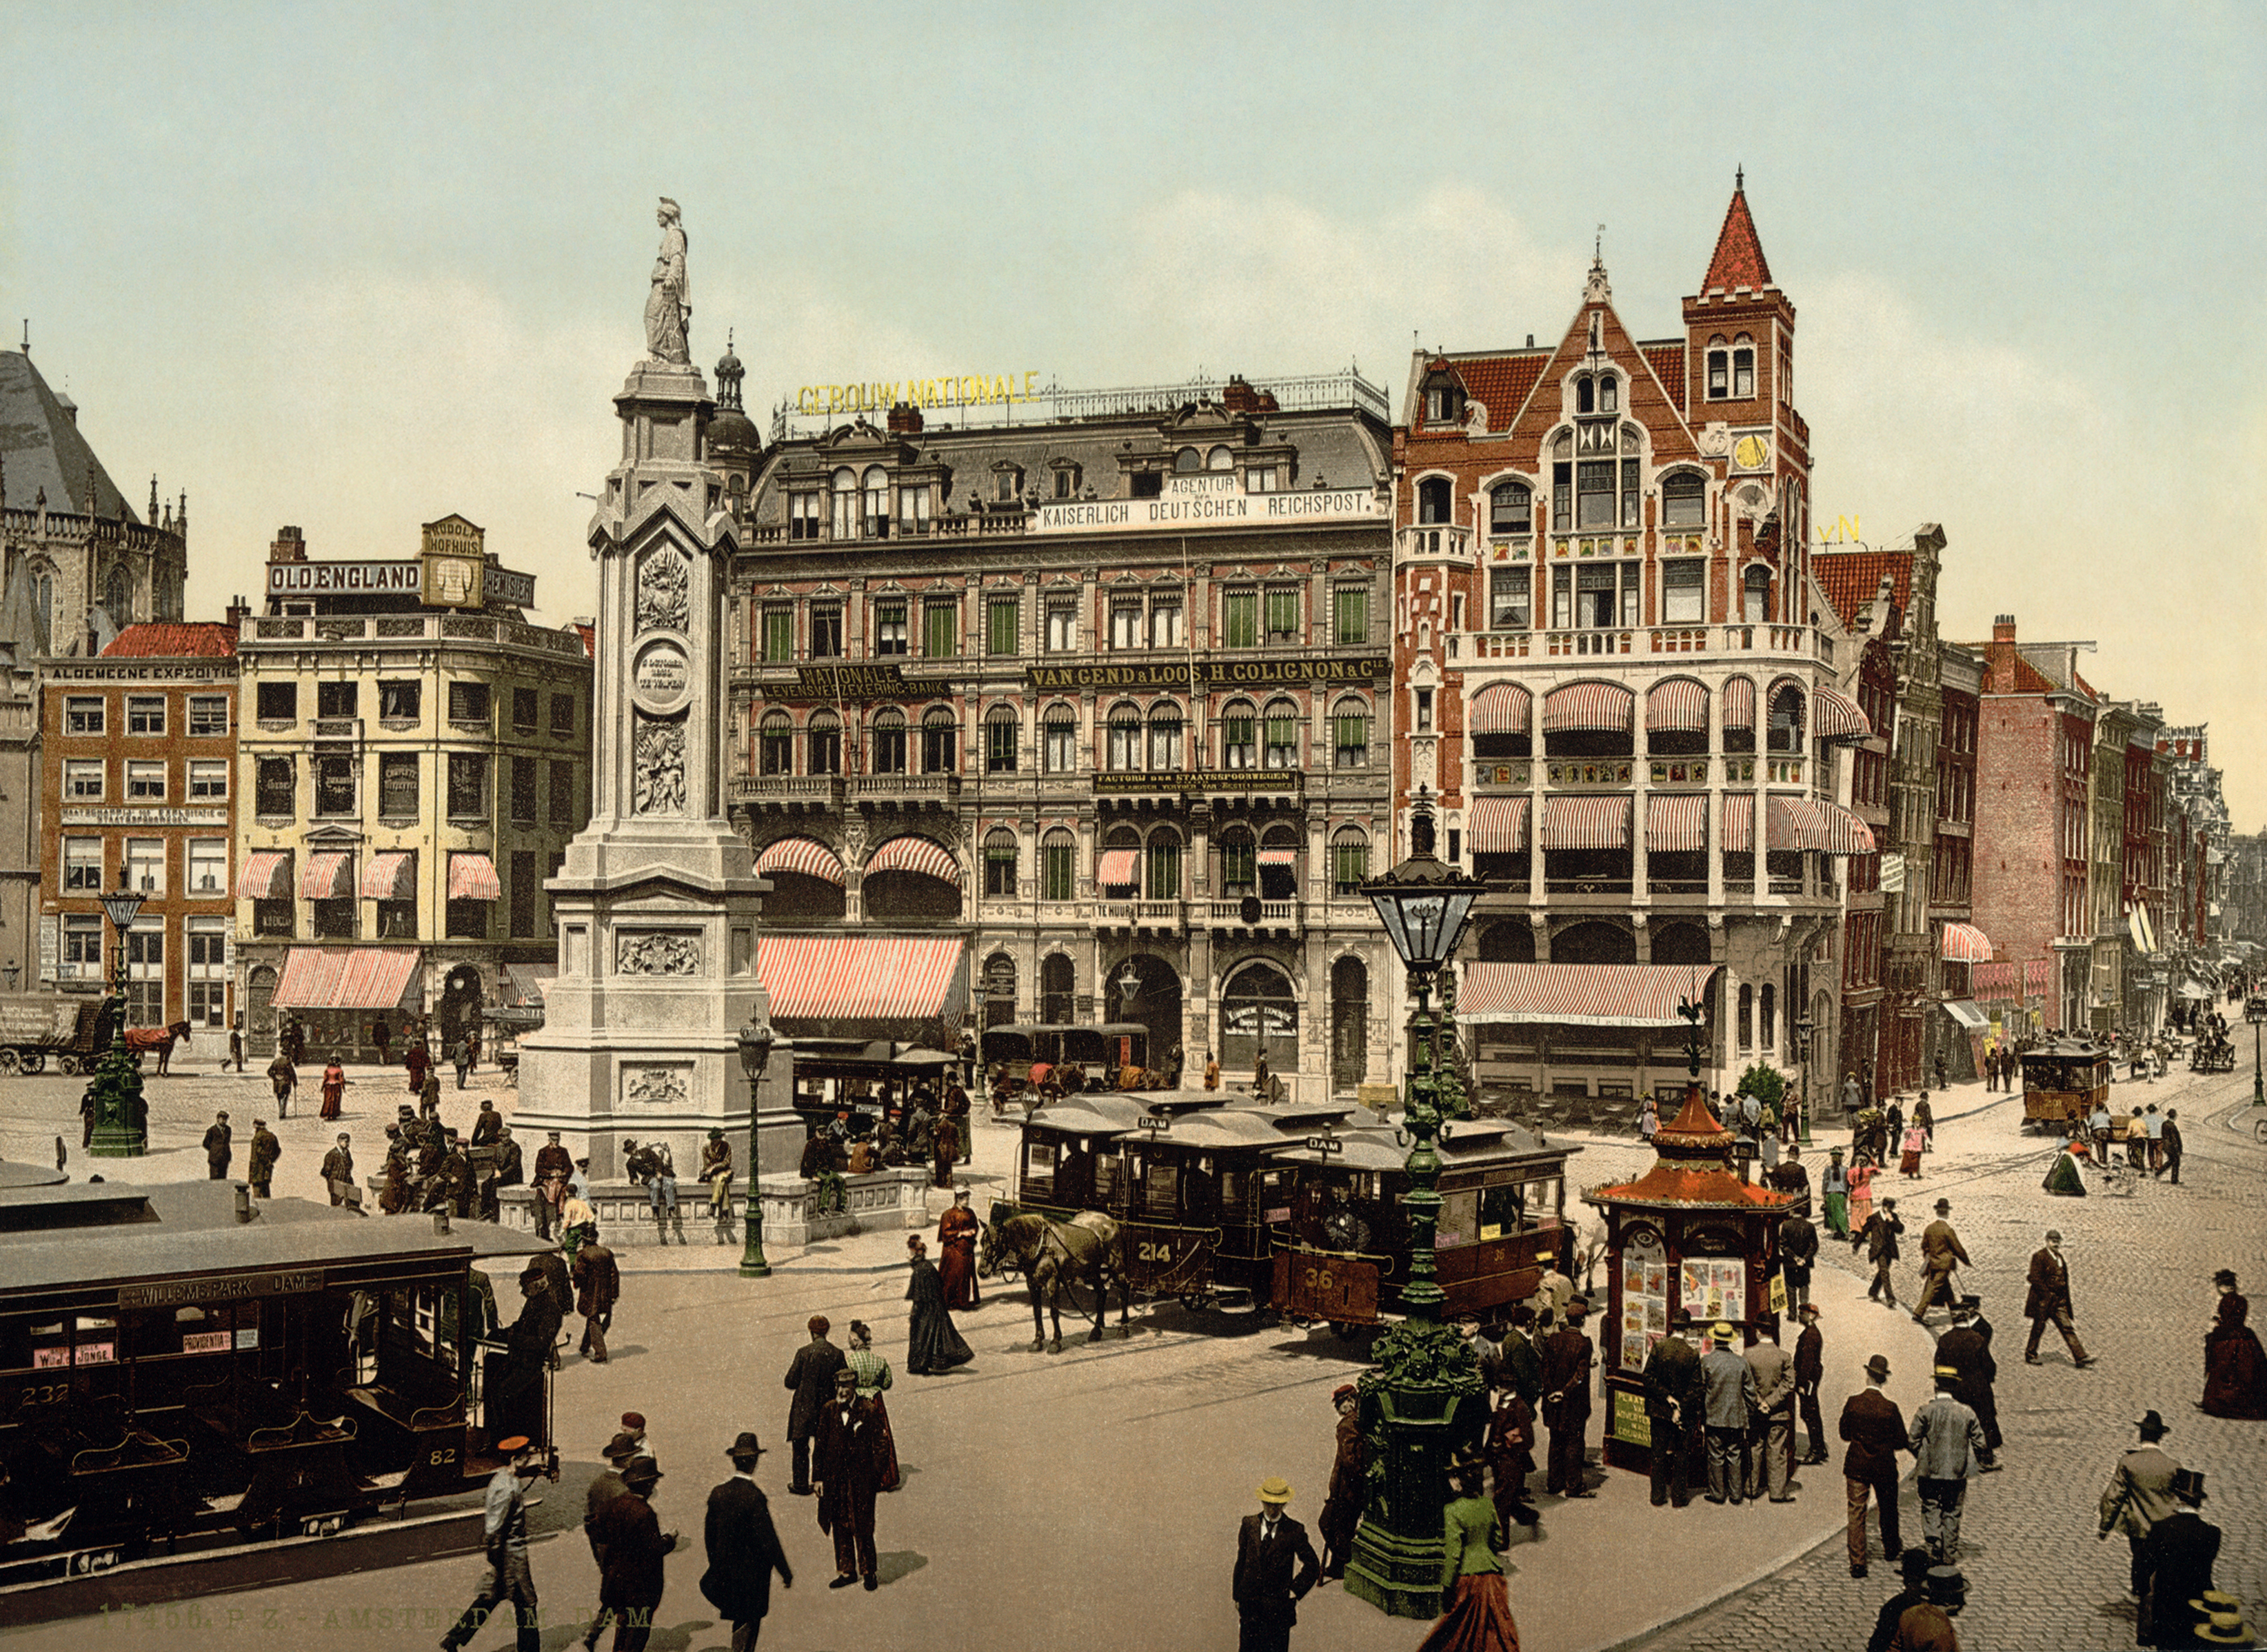 http://upload.wikimedia.org/wikipedia/commons/5/57/Amsterdam_photochrom2.jpg